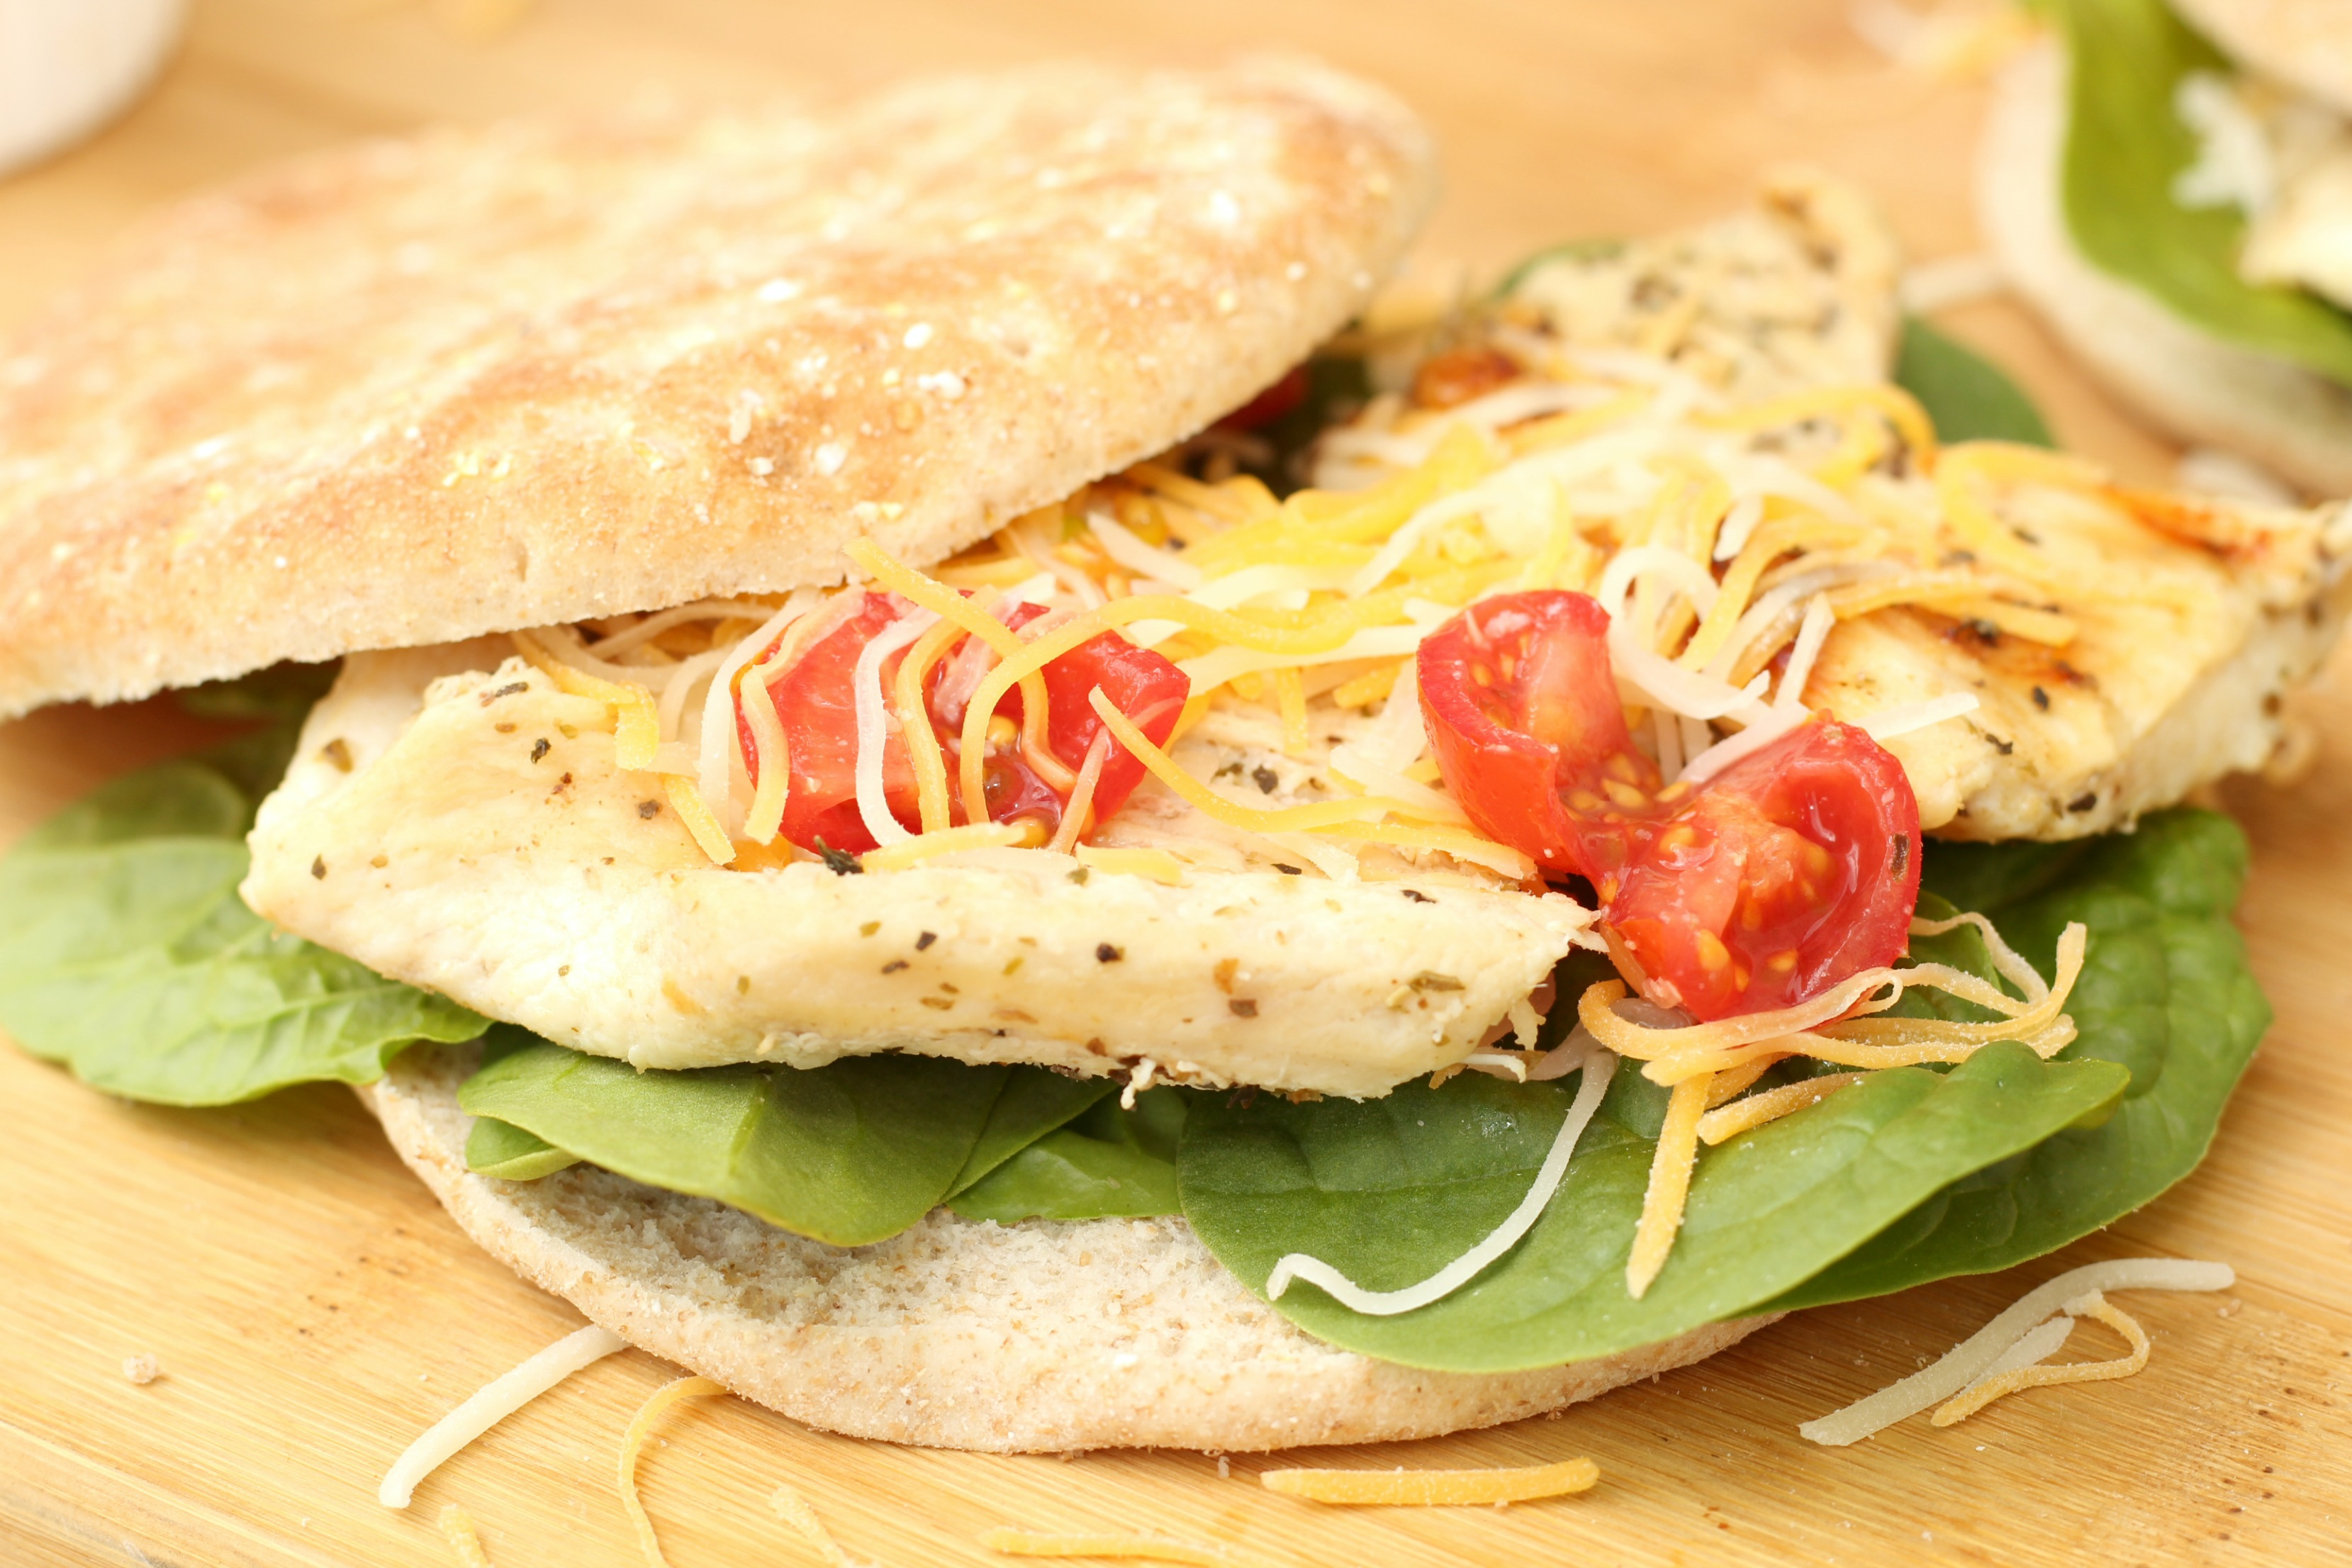 Make Peruvian Grilled Chicken Portable With These Tasty ...  |Recipes Grilled Chicken Subs